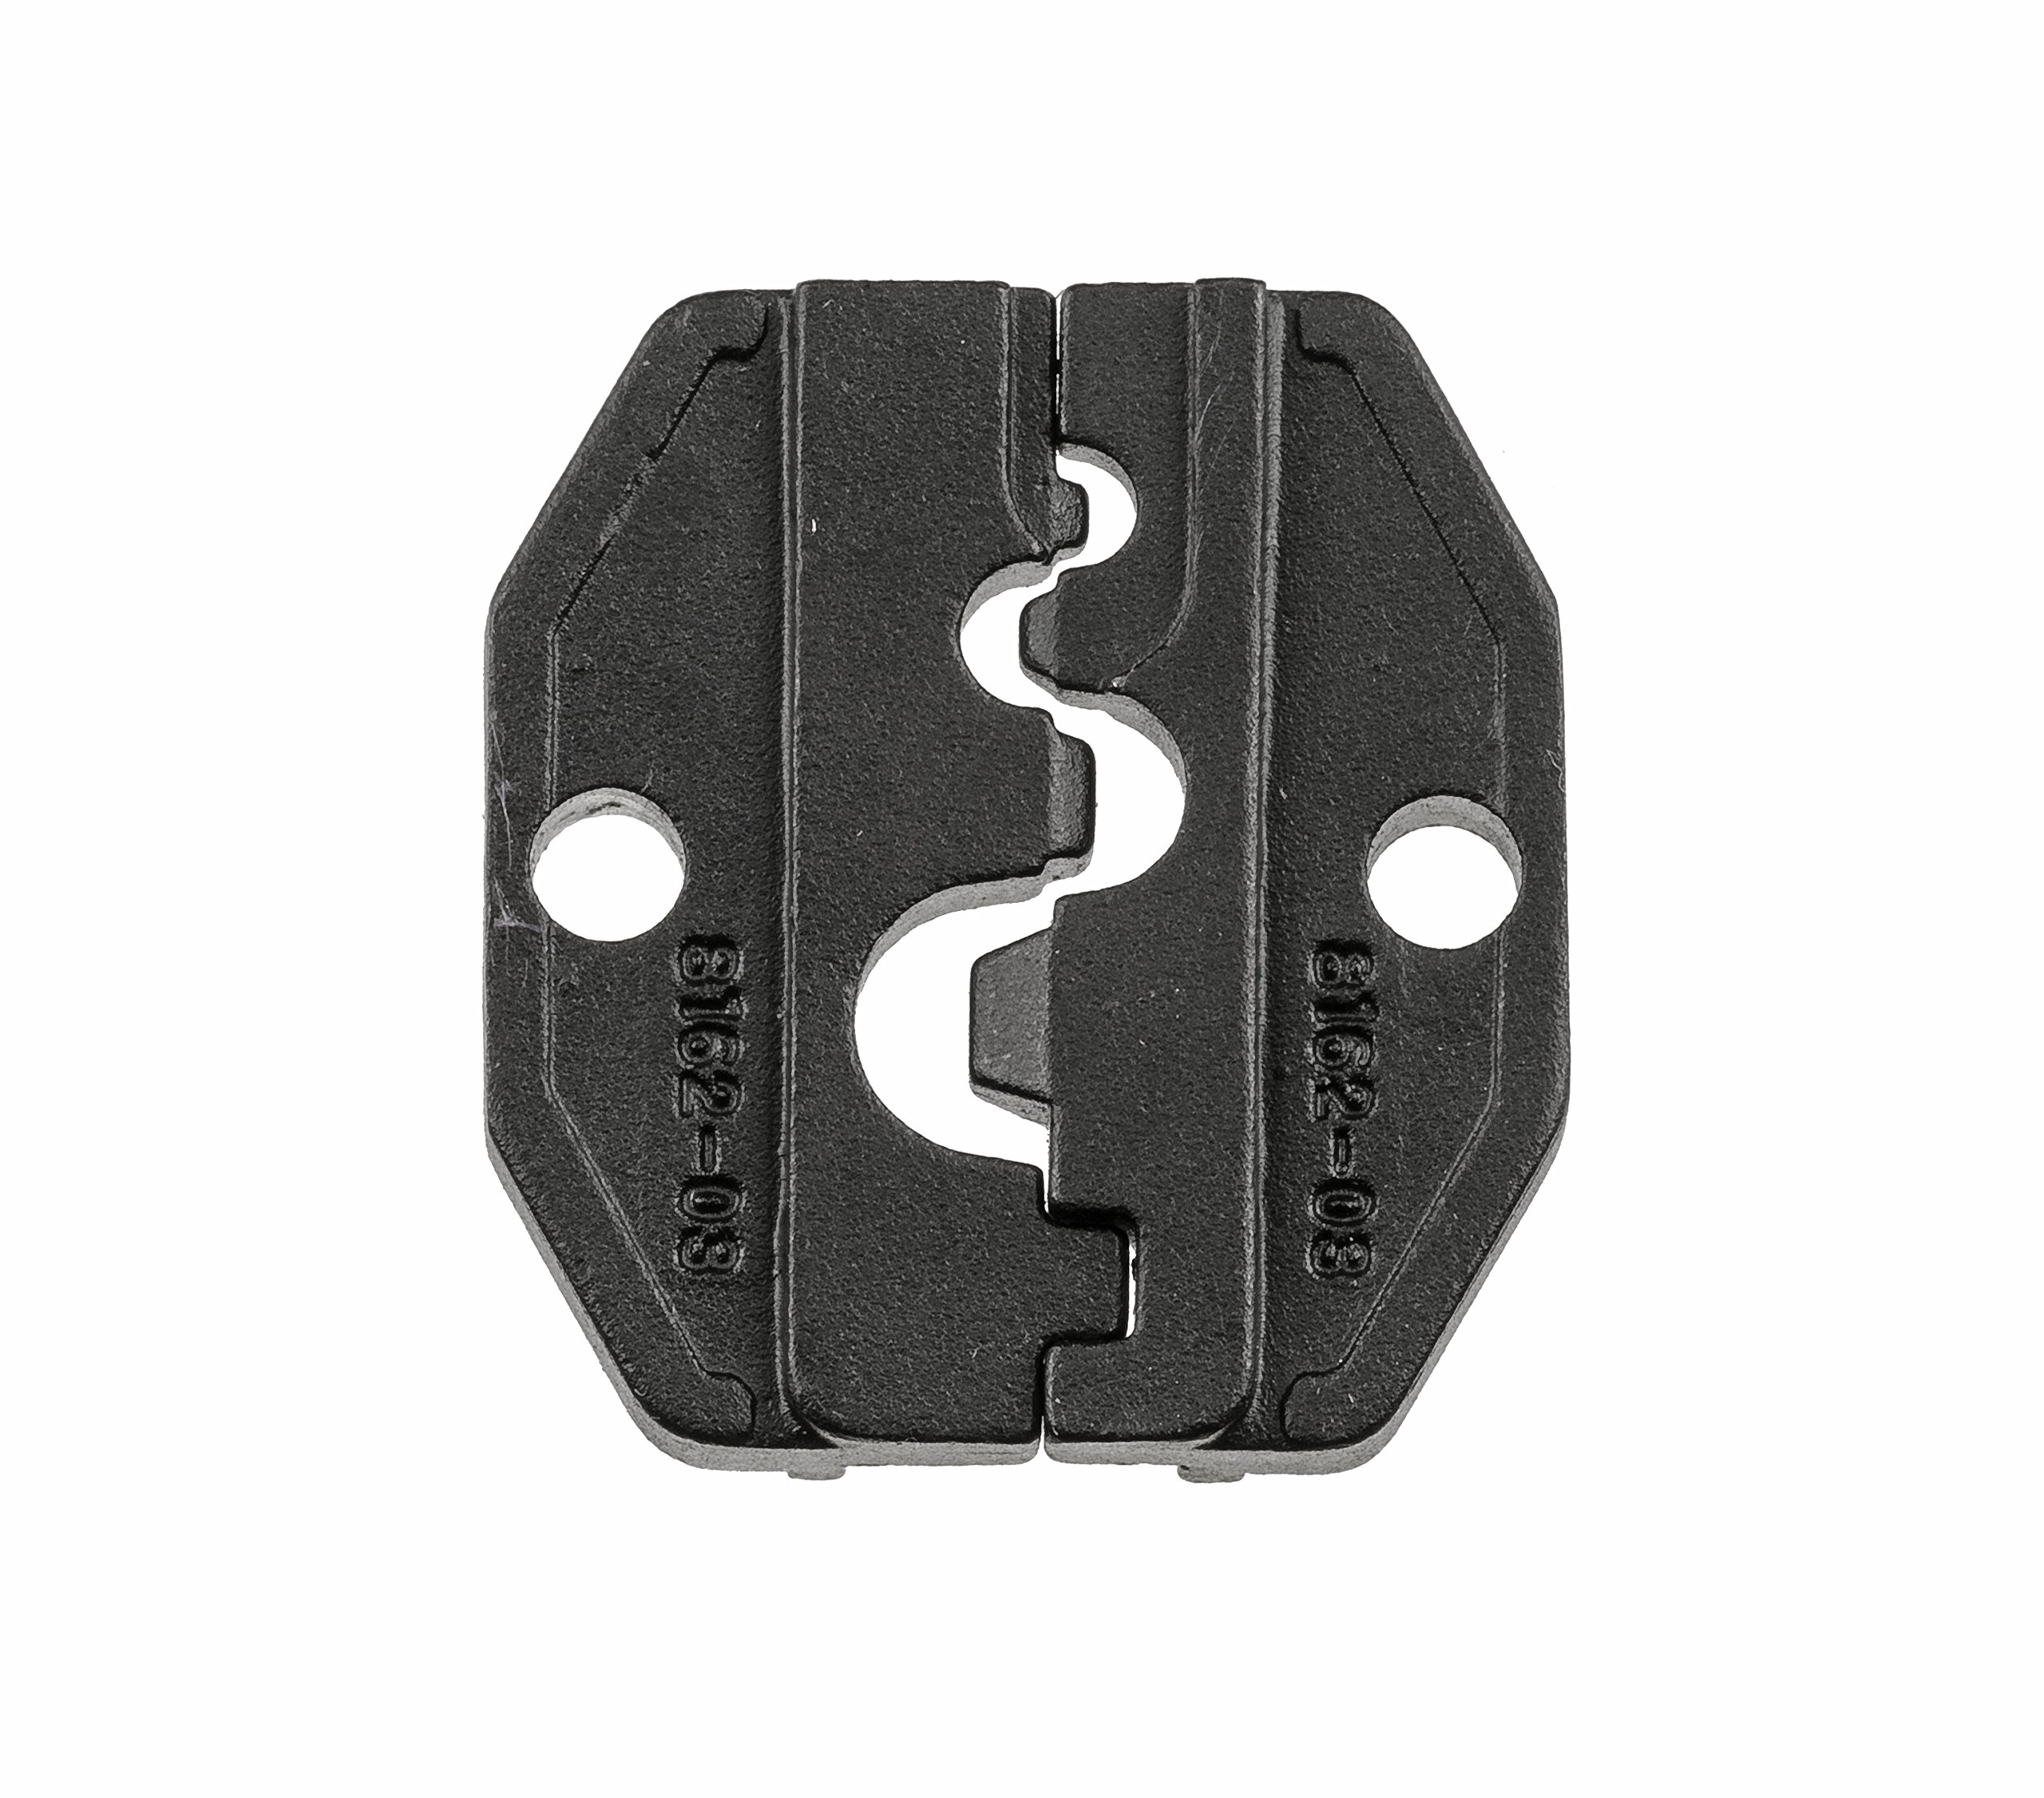 ARES 70263 | Non-Insulated Terminals Crimper Die | Works with ARES 70005 | For Use with 8-22 AWG Non-Insulated Terminal Connectors